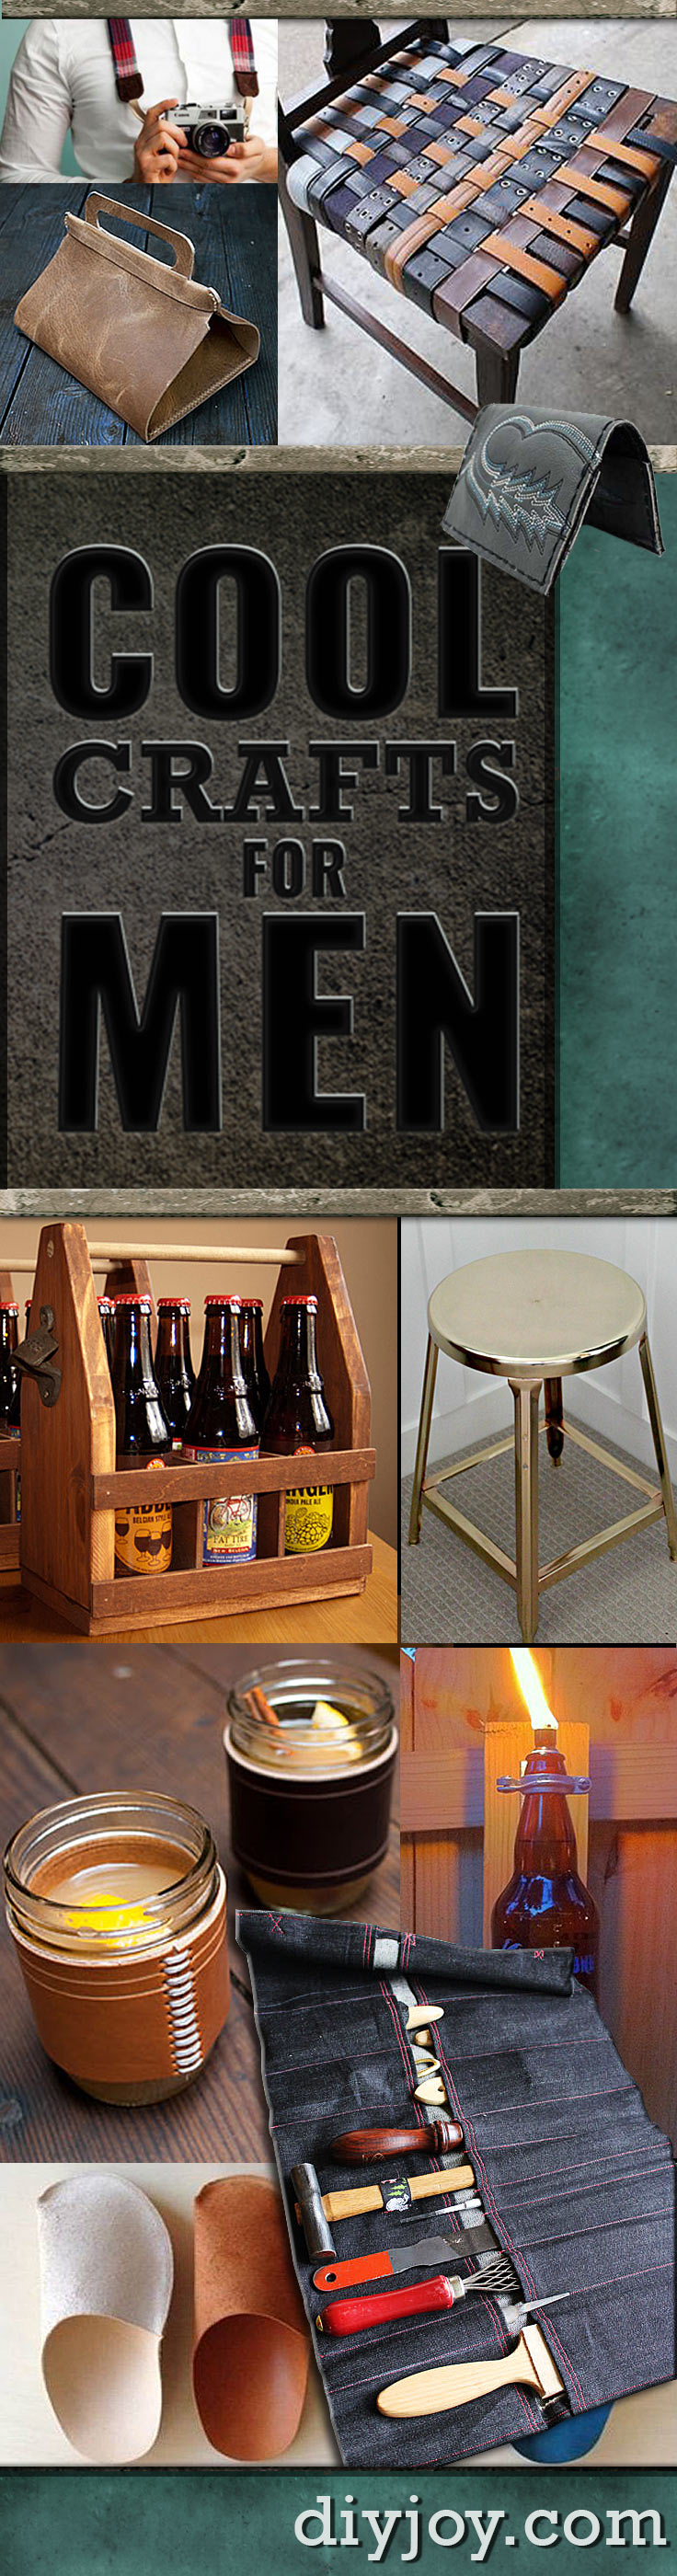 Awesome Crafts for Men and Manly DIY Project Ideas Guys Love - Cool Fathers Day Gifts and Ideas for Dad - Fun Man Cave Ideas, Homemade Gifts, Manly Decor, Games and Gear. Tutorials for Creative Projects to Make This Weekend | Super DIY Gift Ideas for the Boyfriend, Husband, Brother and Father - Dad http://diyjoy.com/diy-projects-for-men-crafts